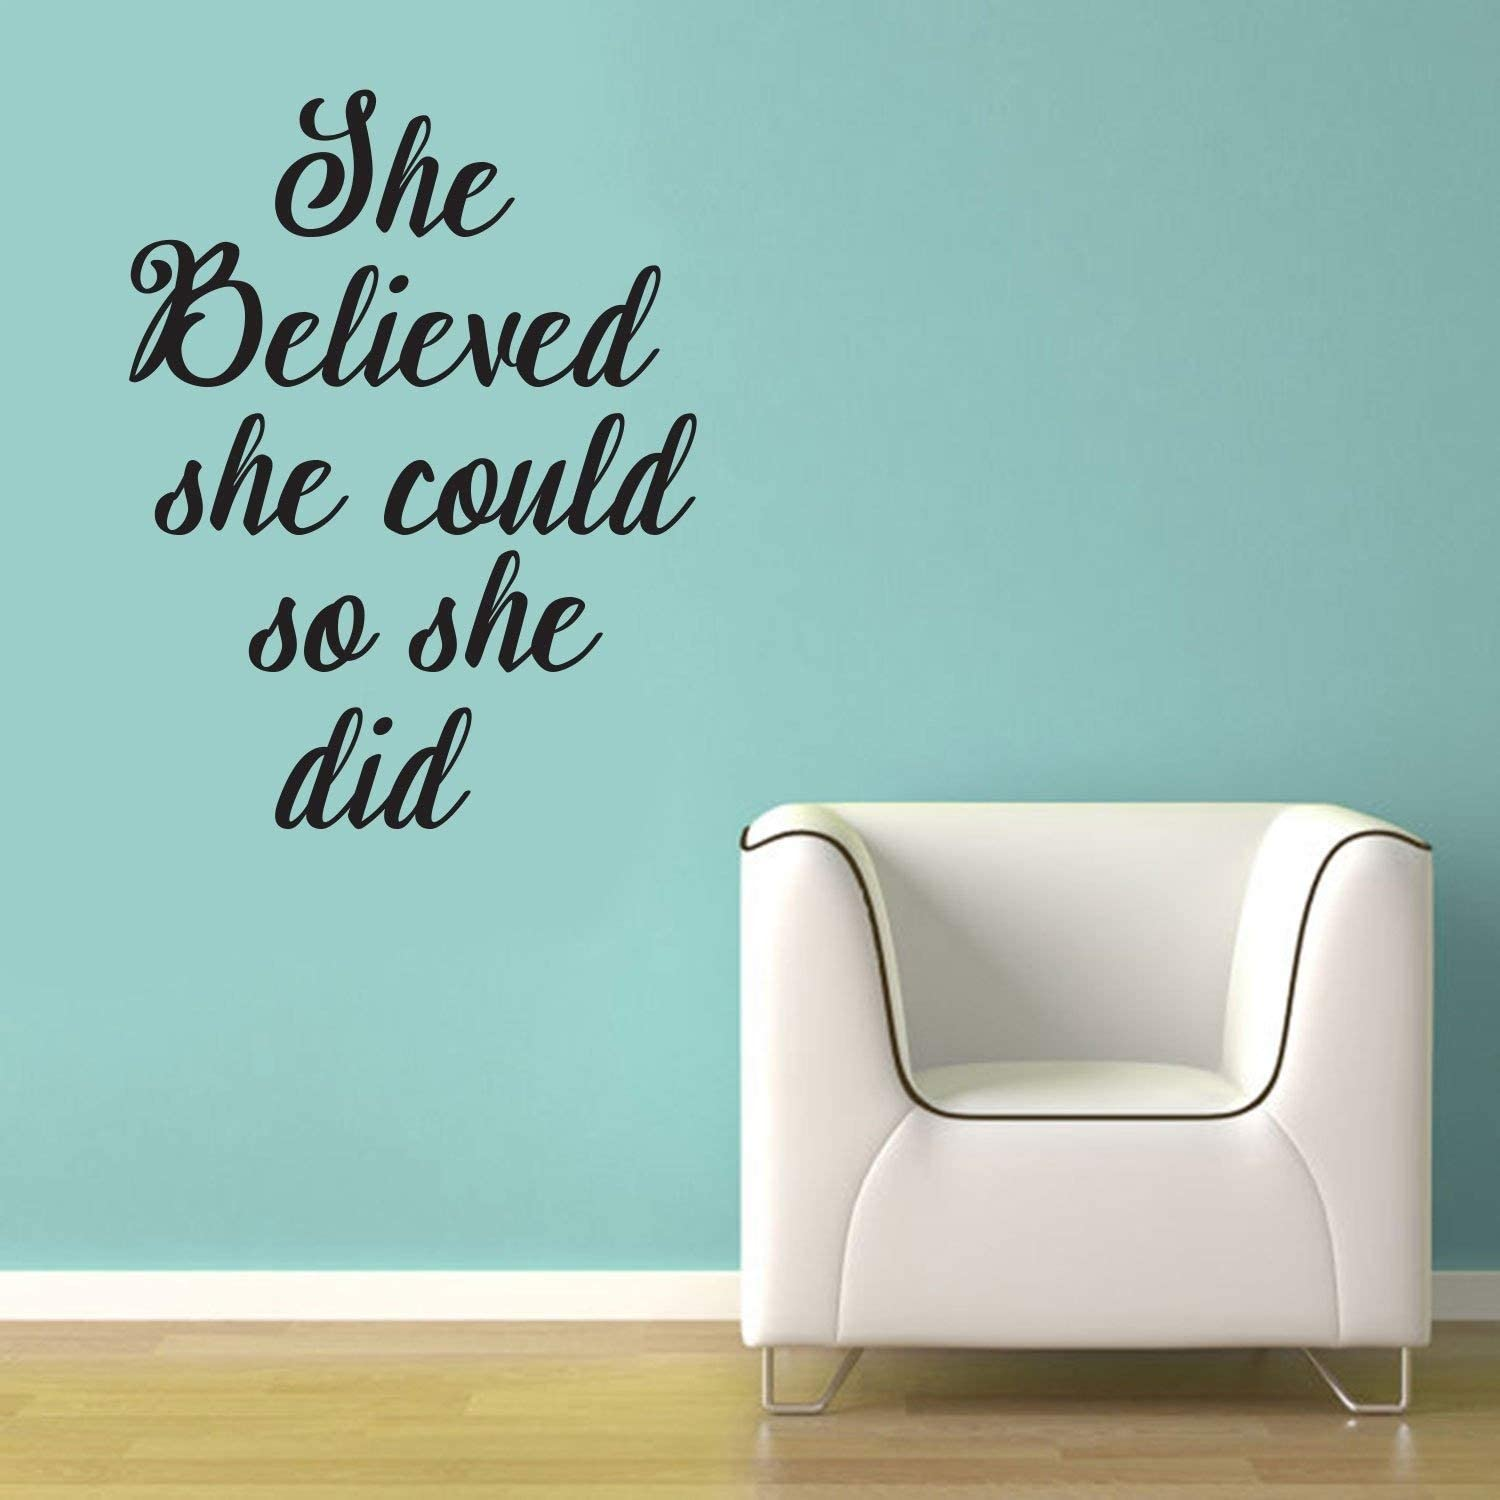 """She Believed She Could So She Did- Inspirational Life Quotes - Wall Art Decal - 29"""" x 22"""" Decoration Vinyl Sticker - Bedroom Living Room Wall Decor - Apartment Wall Decoration - Peel Off Stickers"""